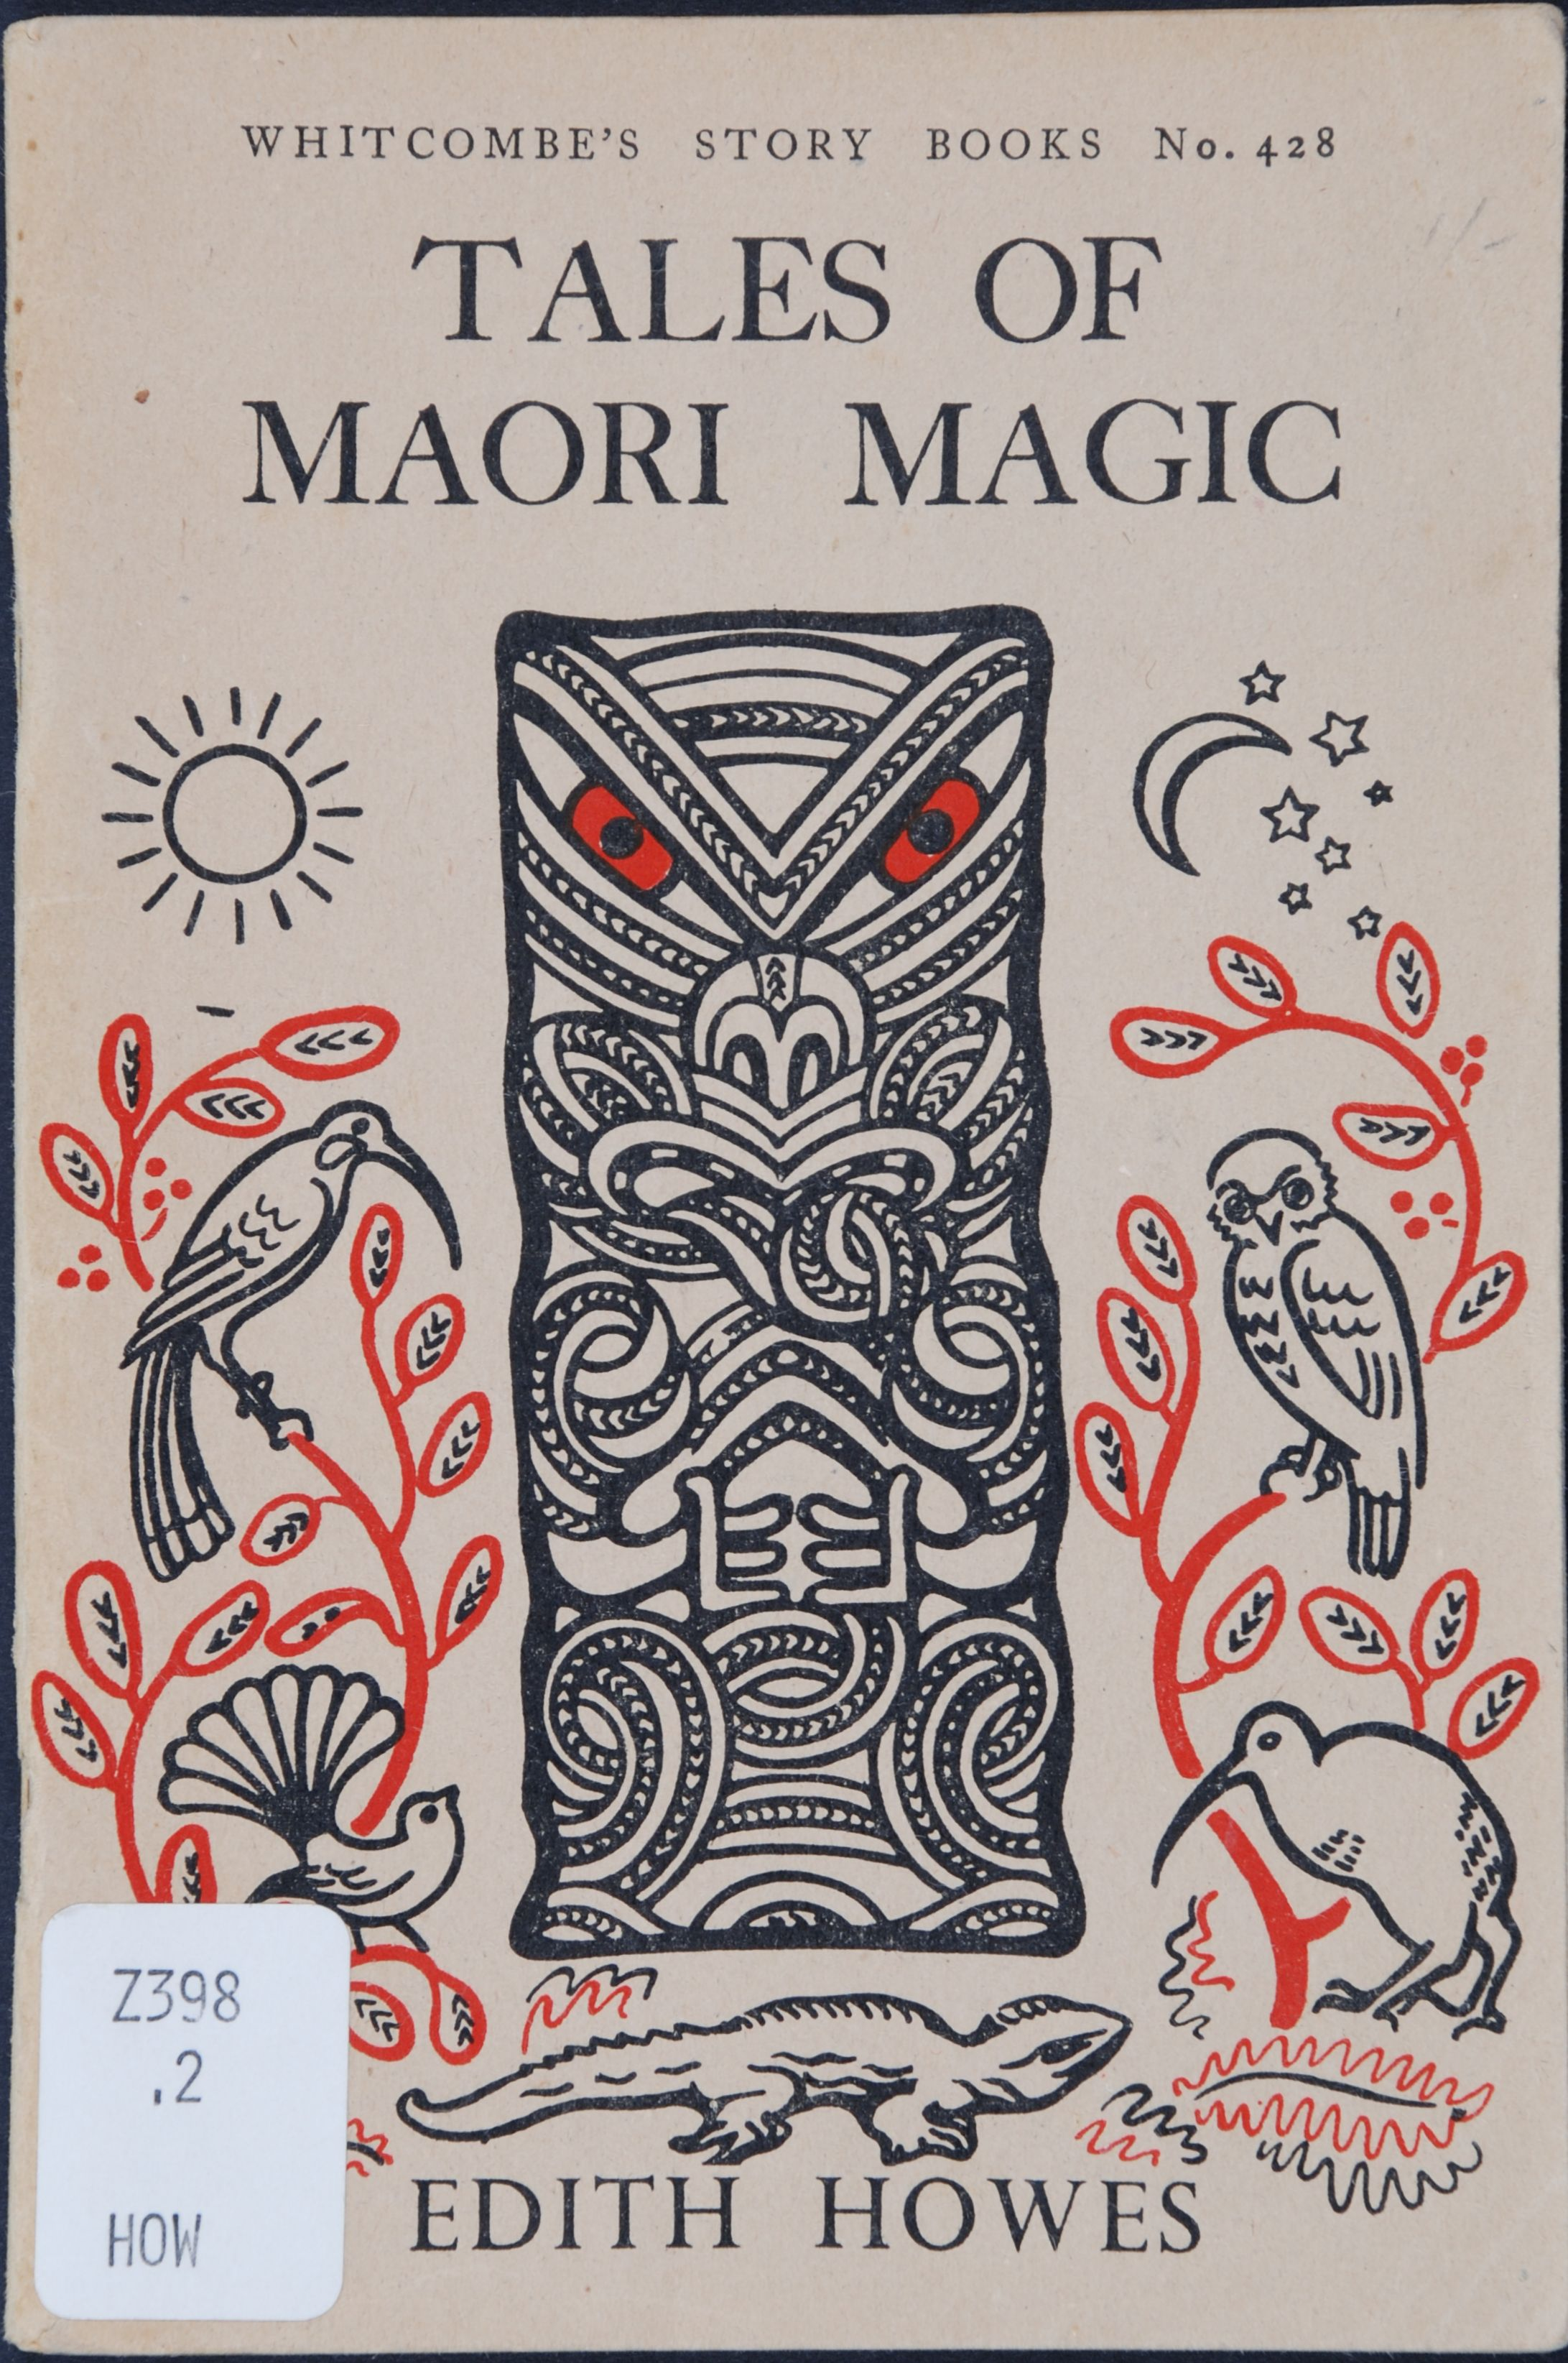 Edith Howes. Tales of Maori magic. Christchurch, N.Z.: Whitcombe and Tombs [1953]